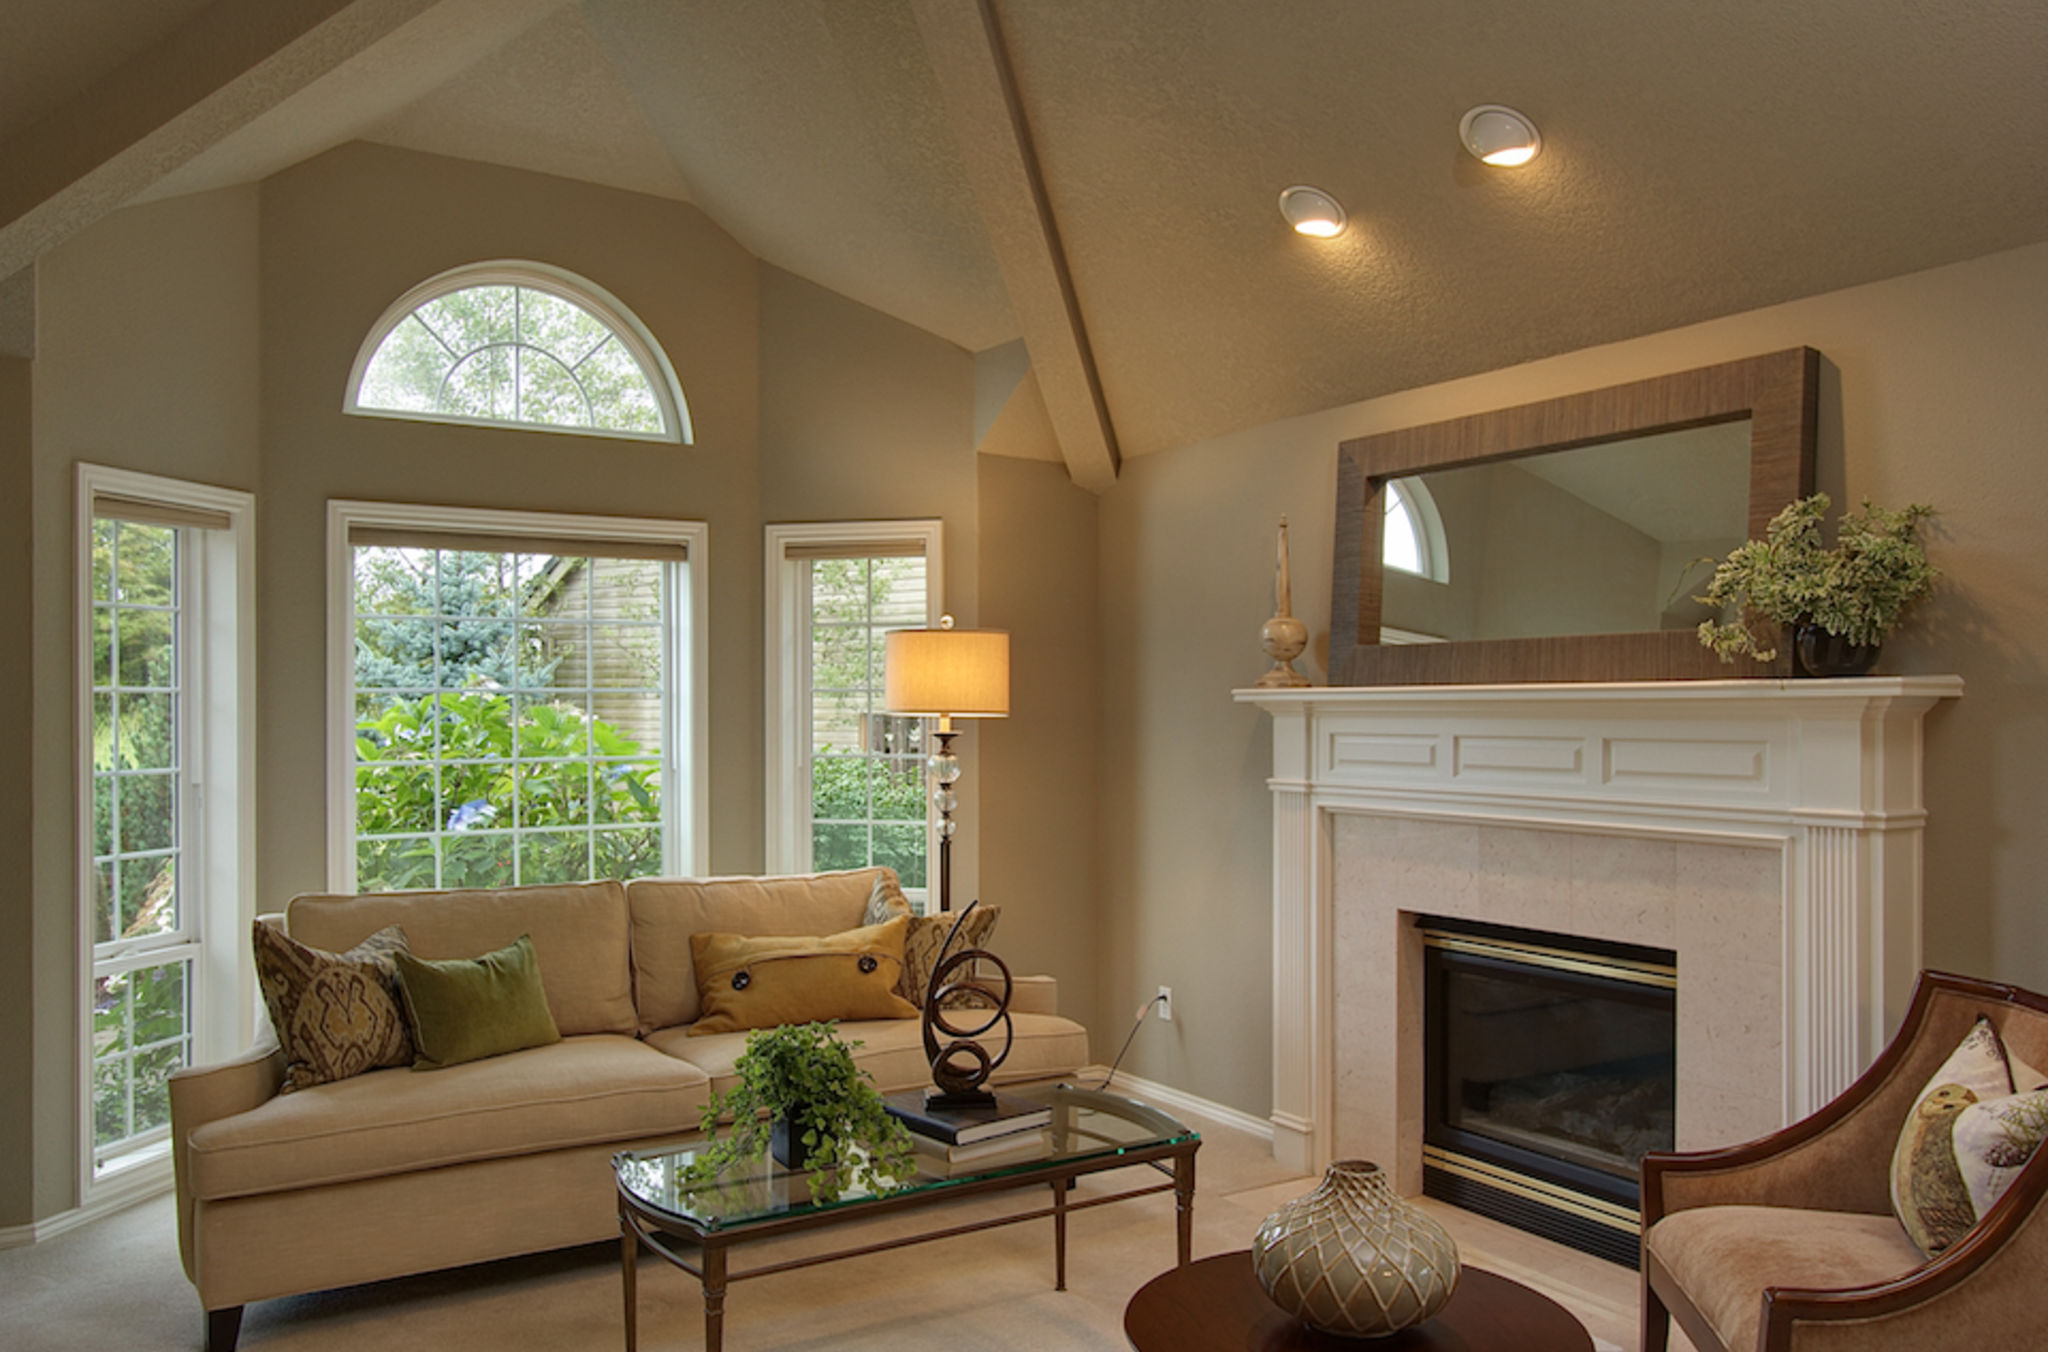 Living room with bay window and fireplace